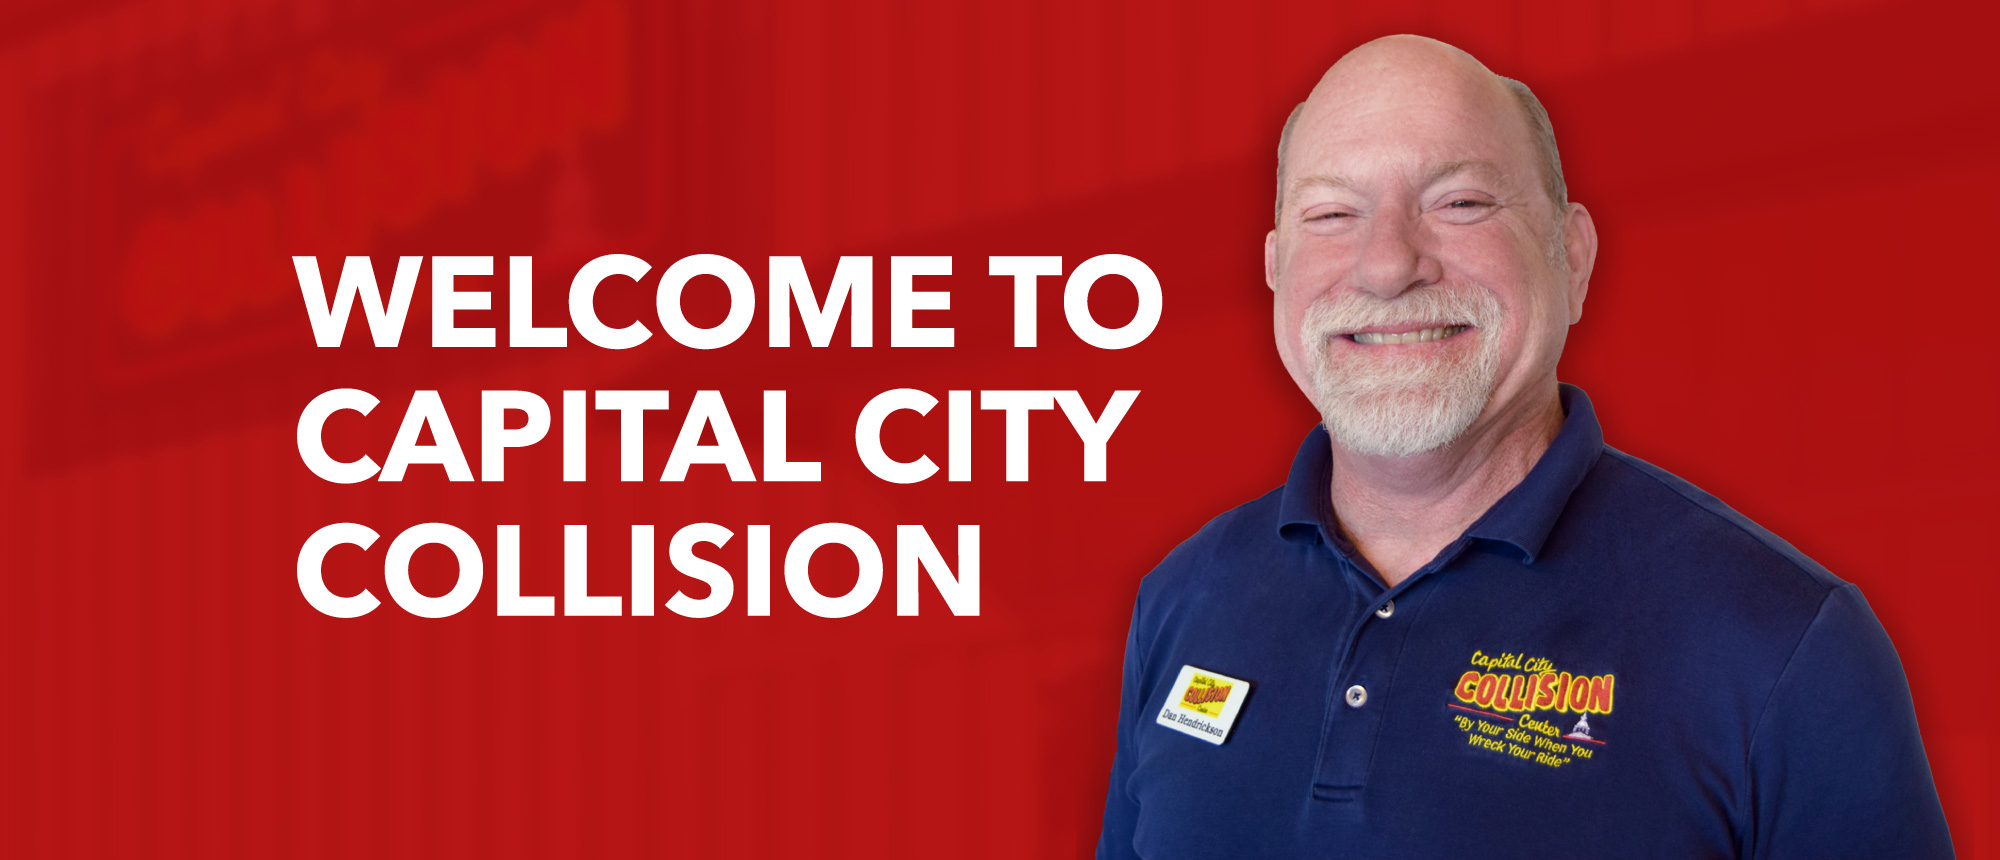 Welcome to Capital City Collision